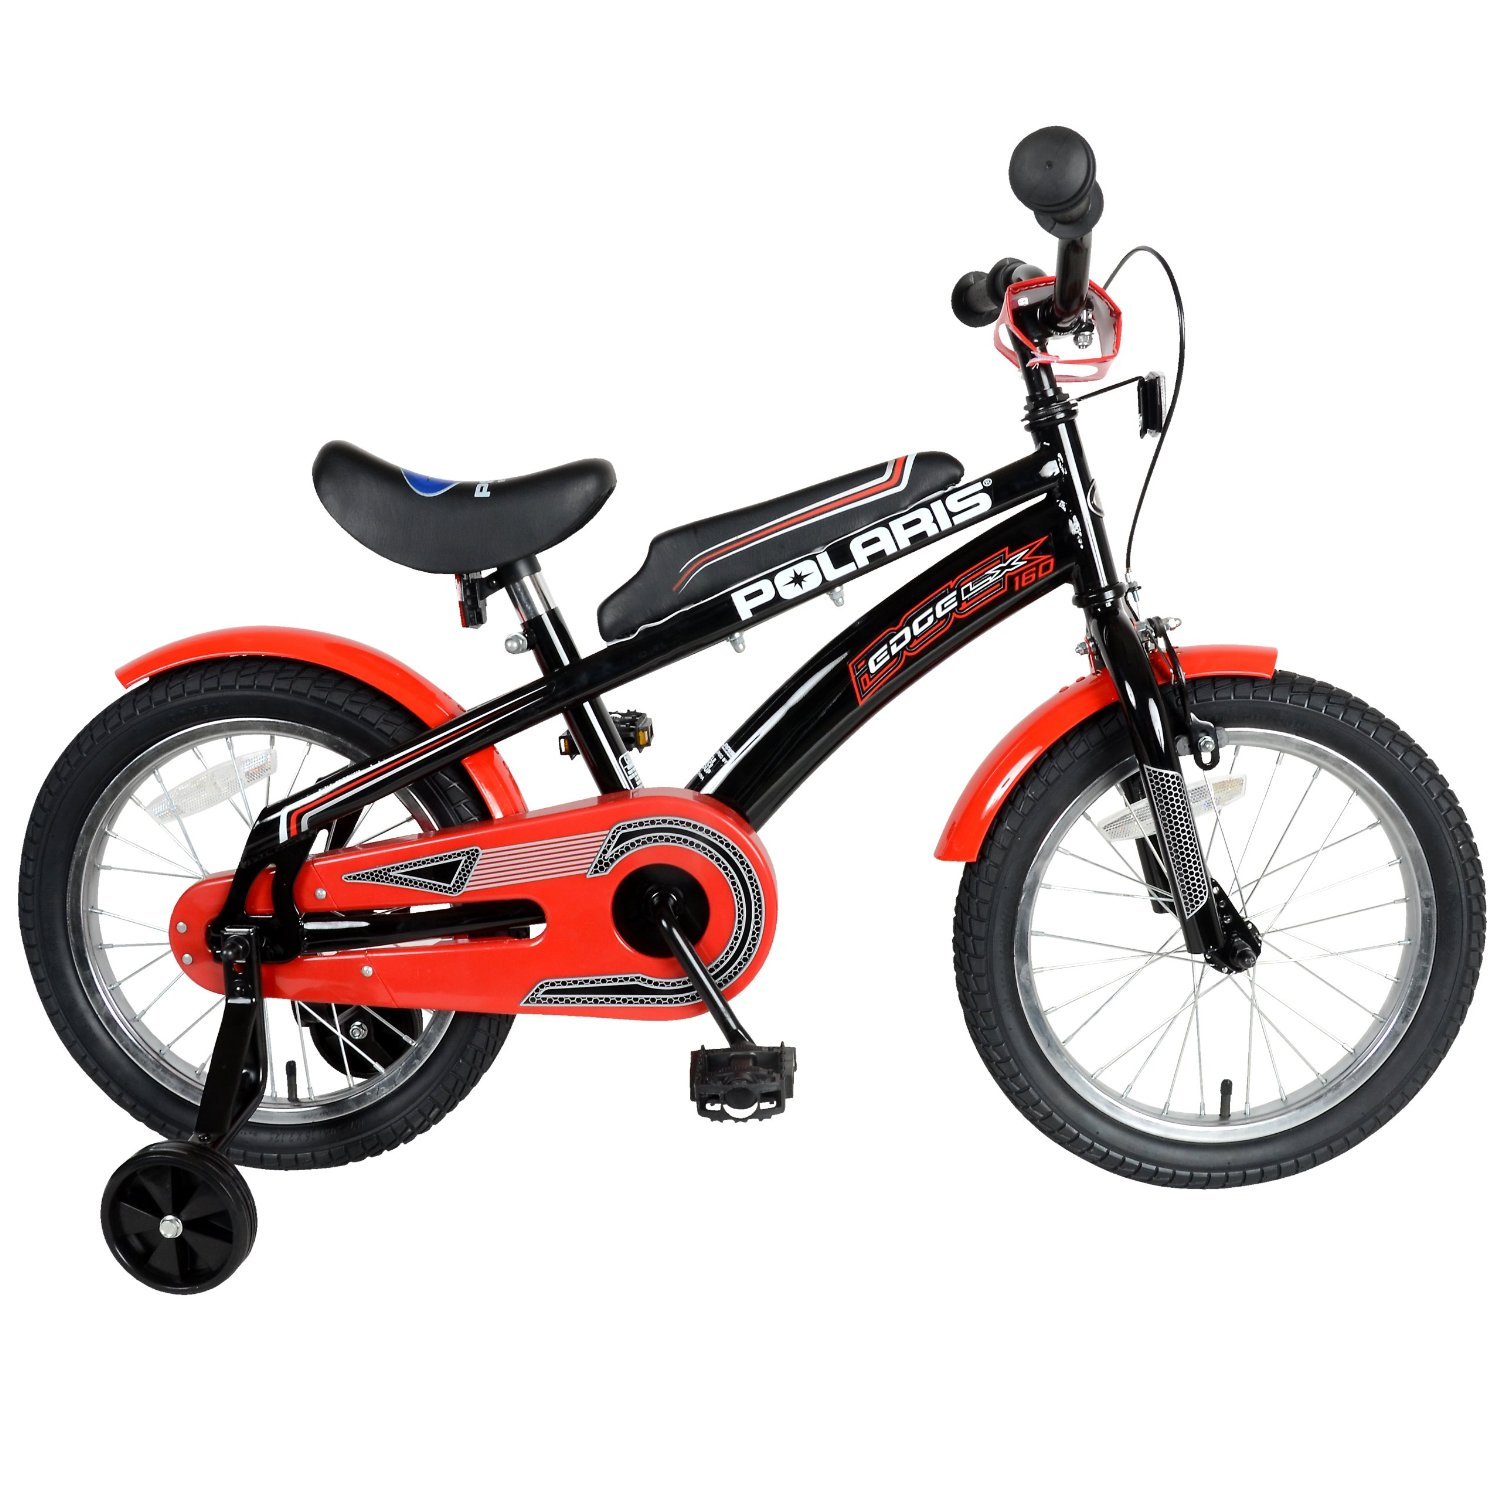 Polaris Edge LX 160 16 Kids Bike